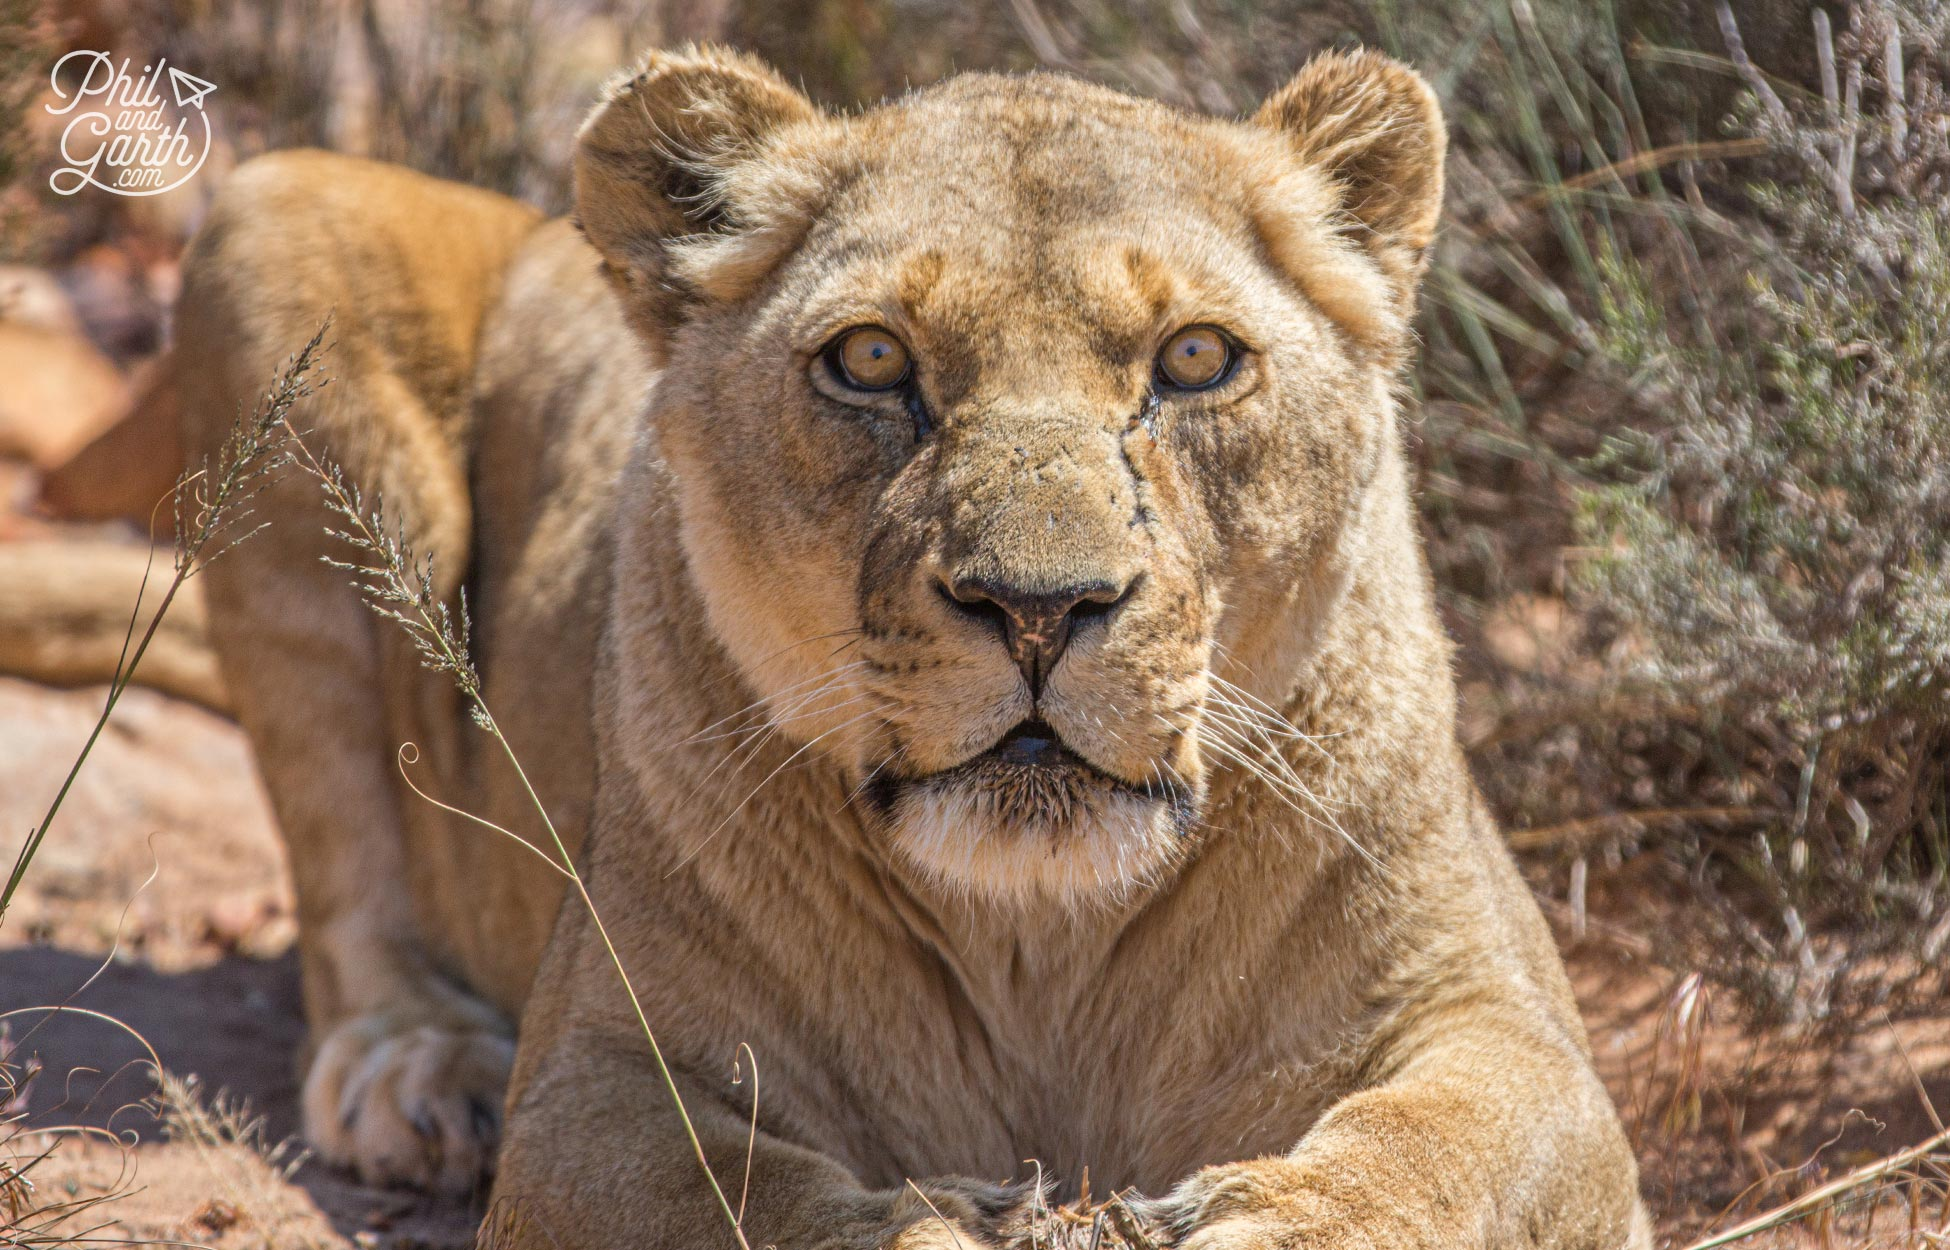 This lioness looks like she was ready to pounce on us!